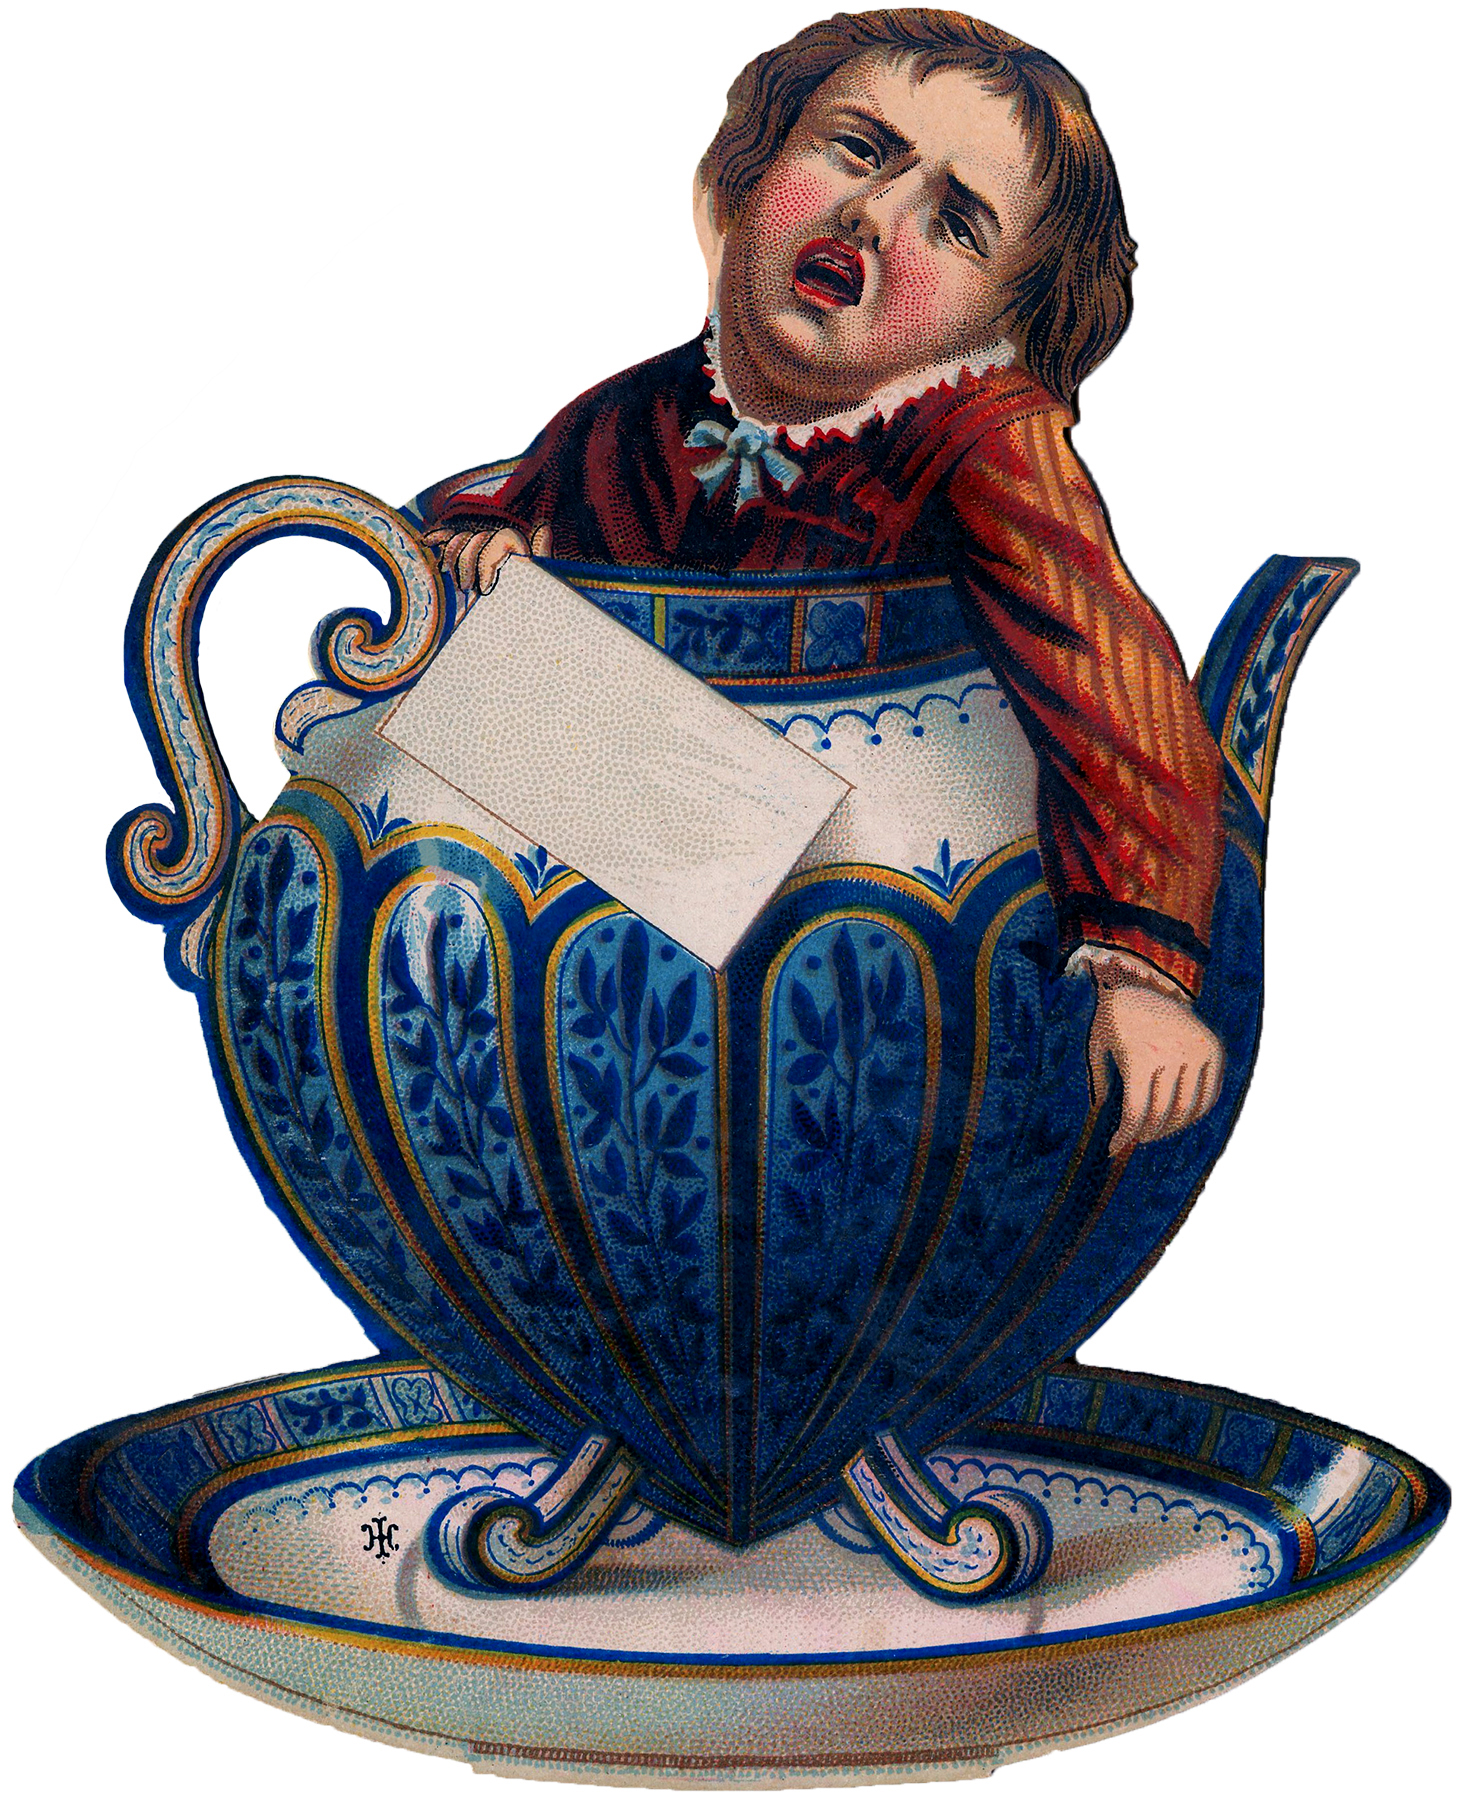 Quirky Teapot Boy Image